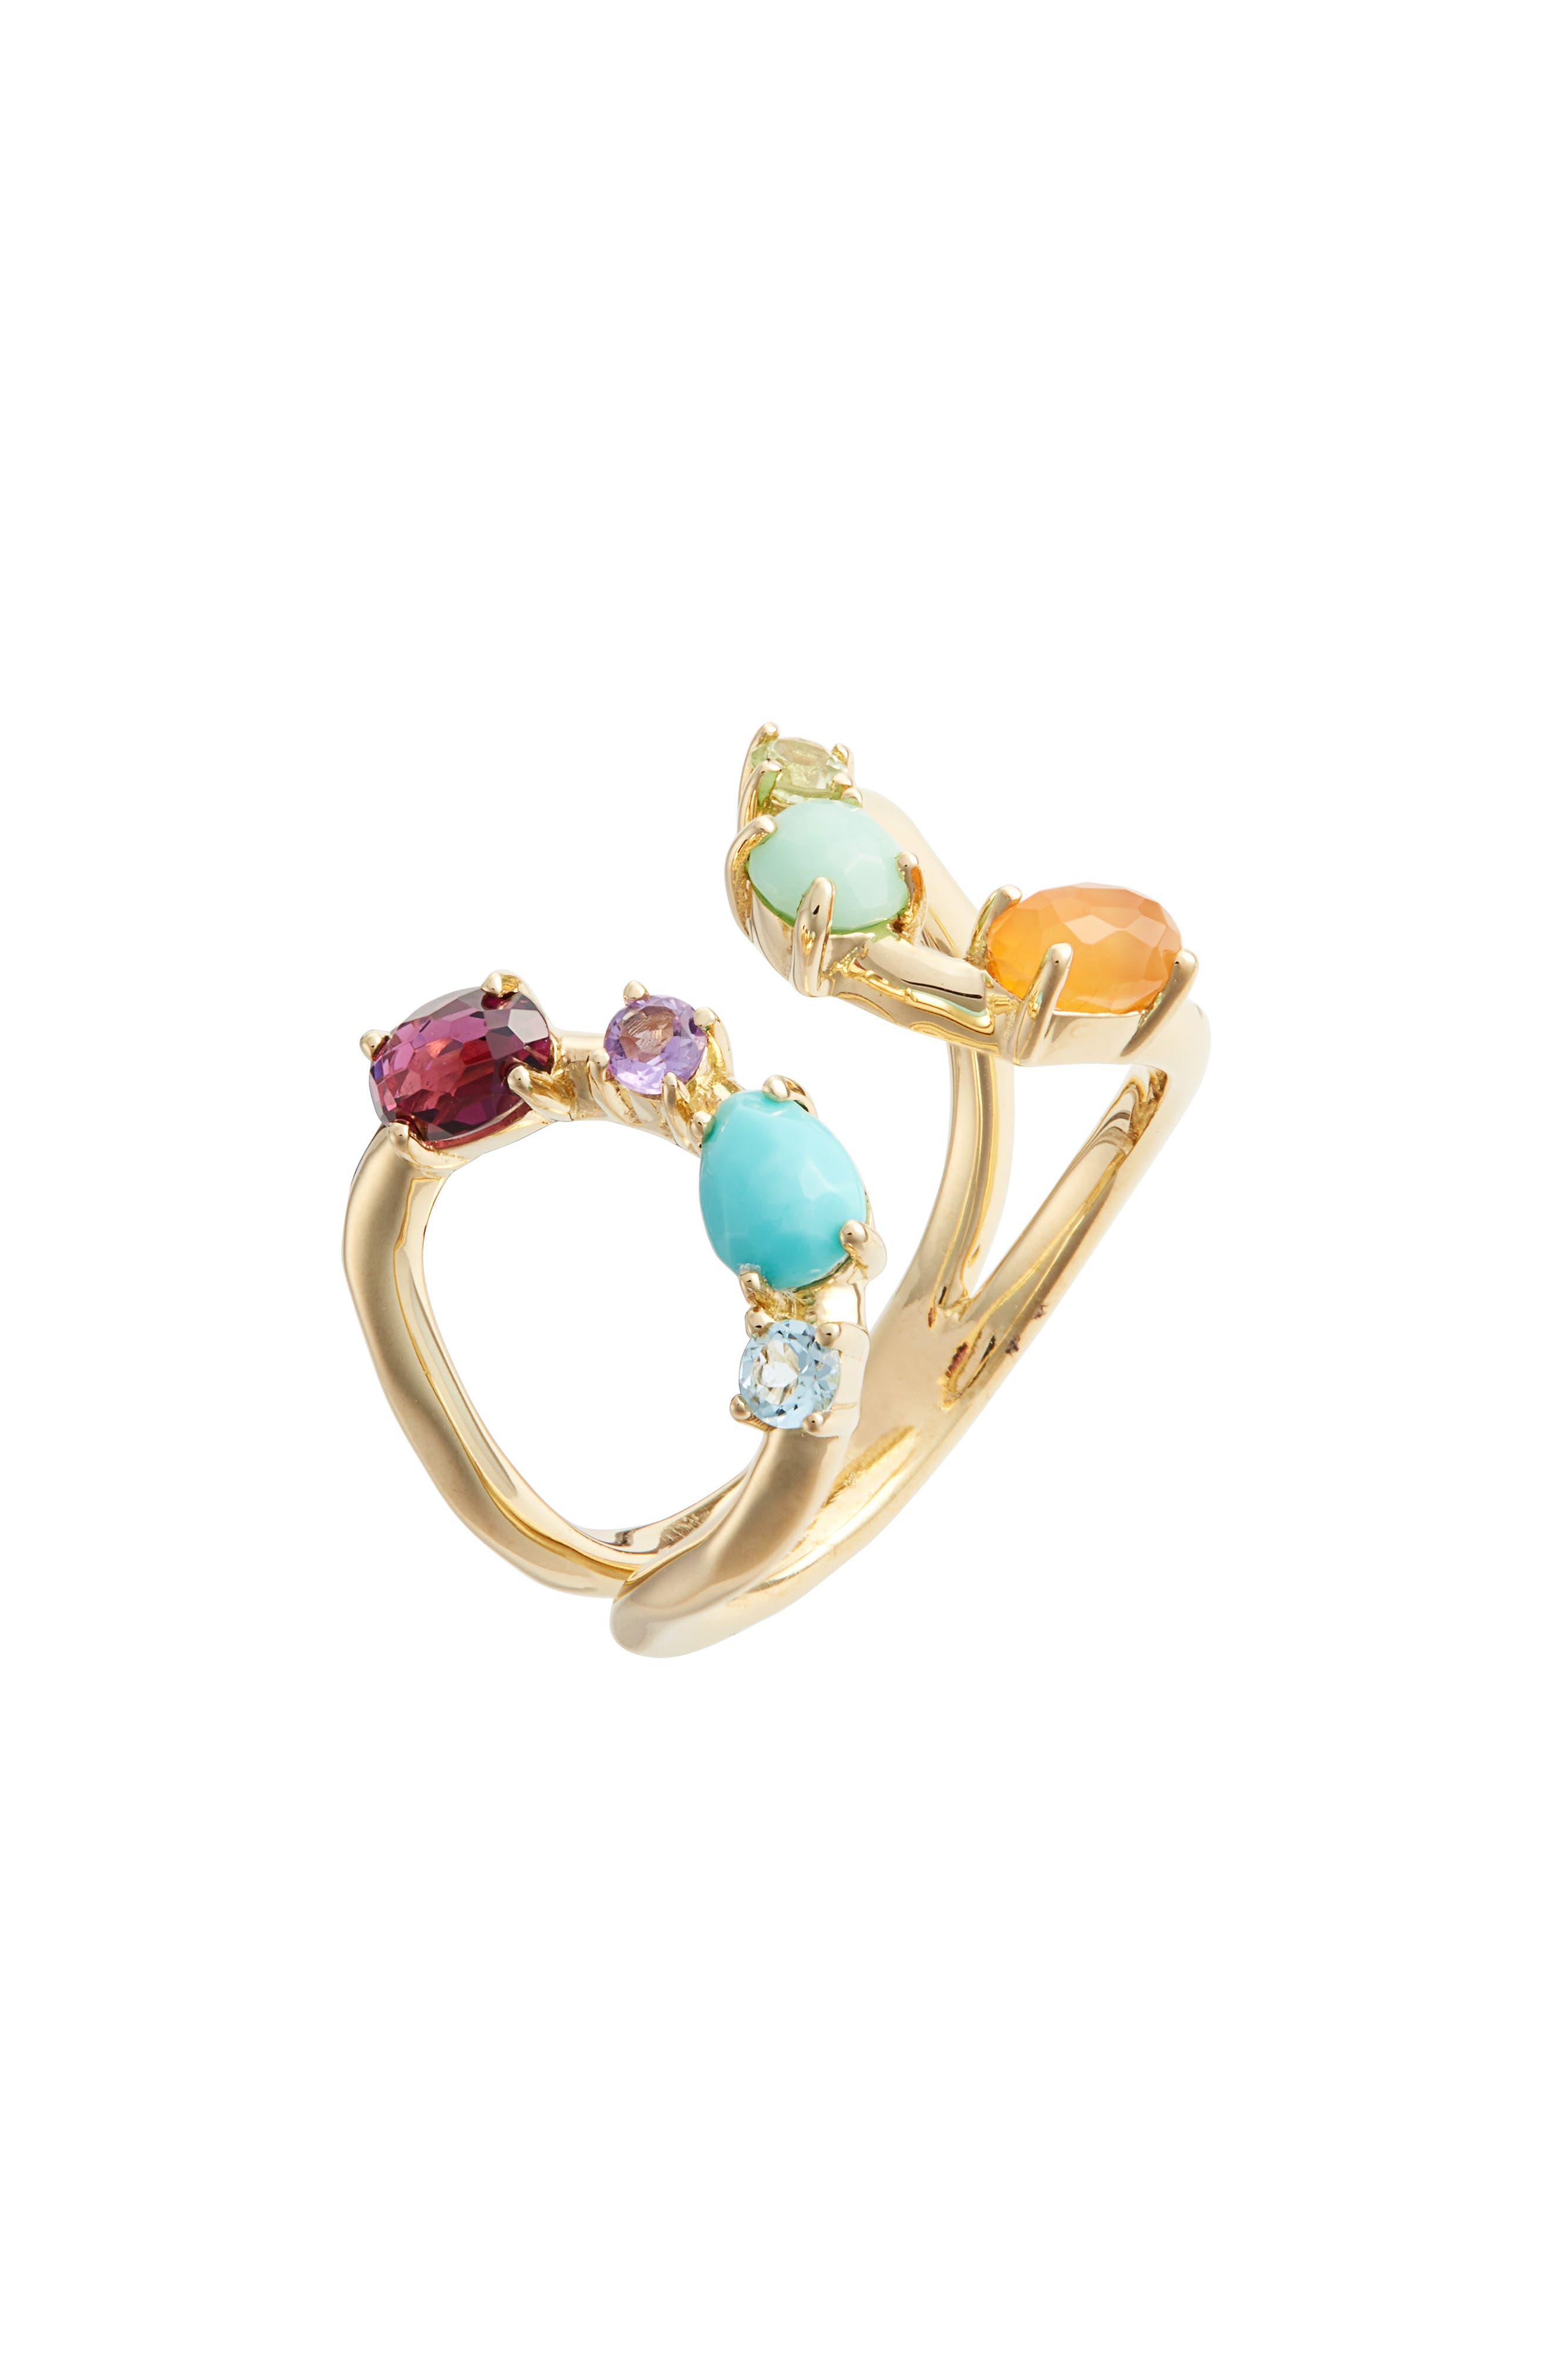 Rock Candy 18K Gold Open Ring,                         Main,                         color, GOLD/ MULTI